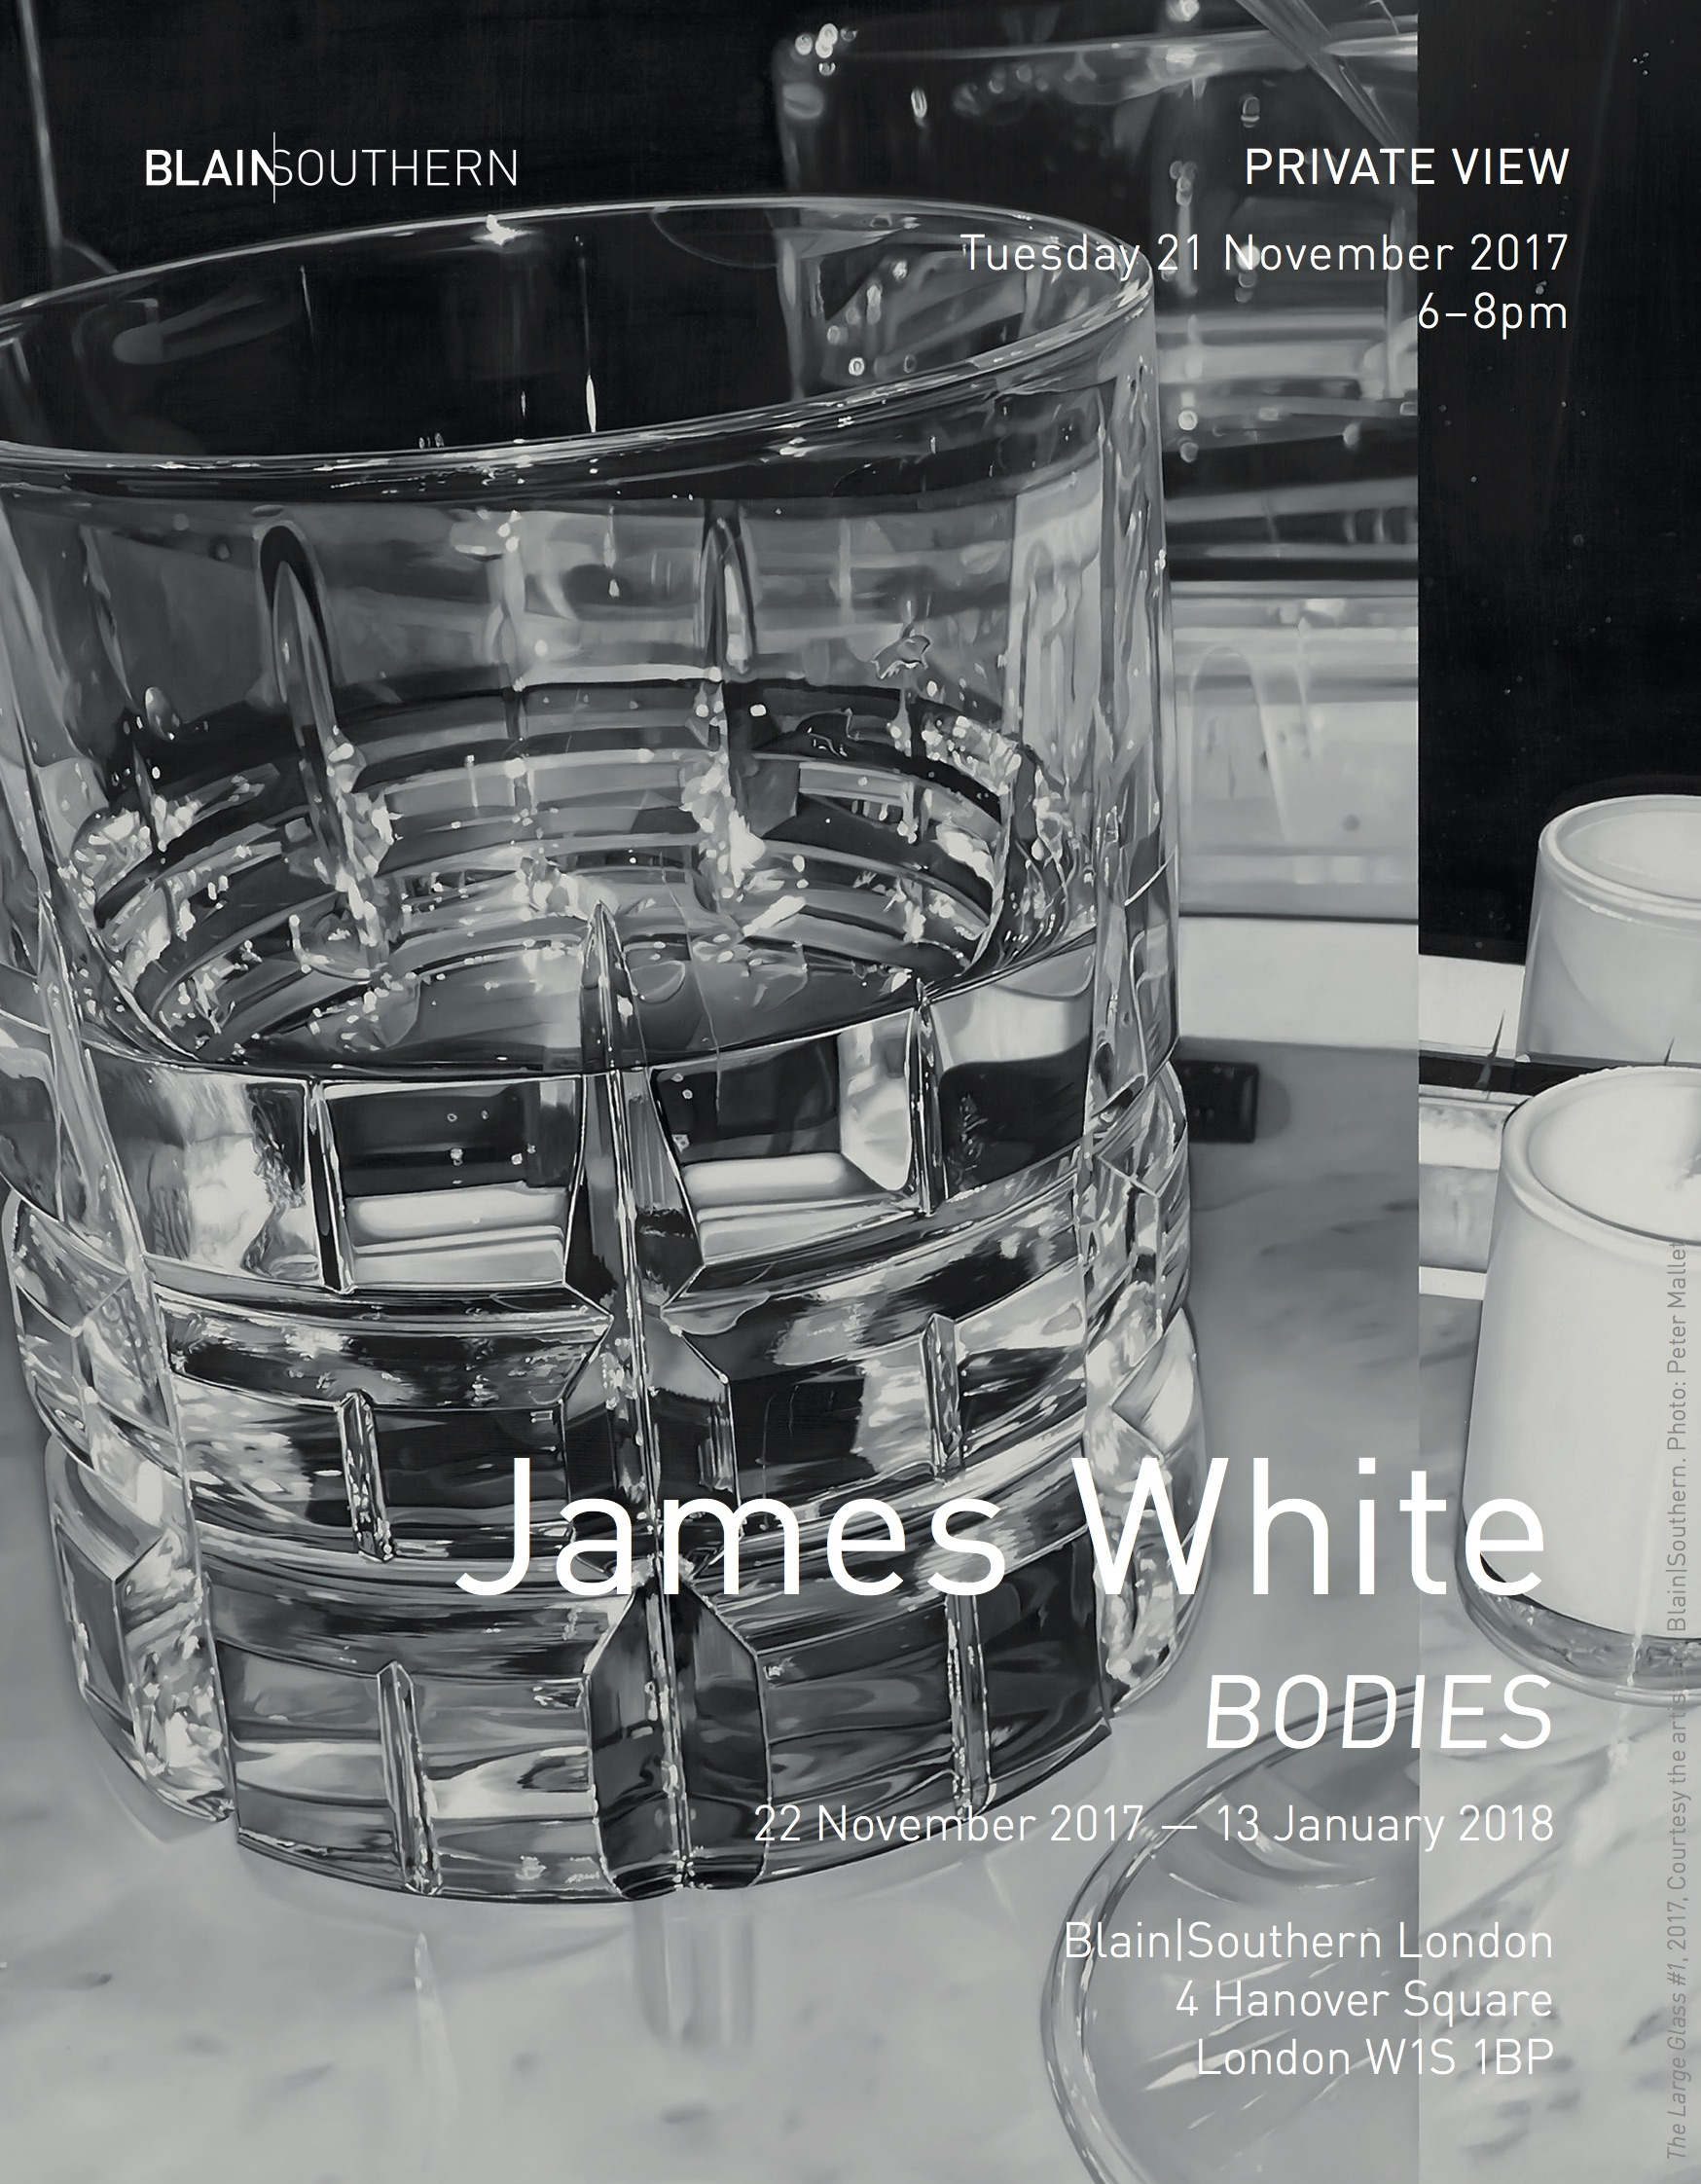 Pivate View Invitation, Tuesday 21 November 2017, James White, BODIES, BlainSouthern London.jpg